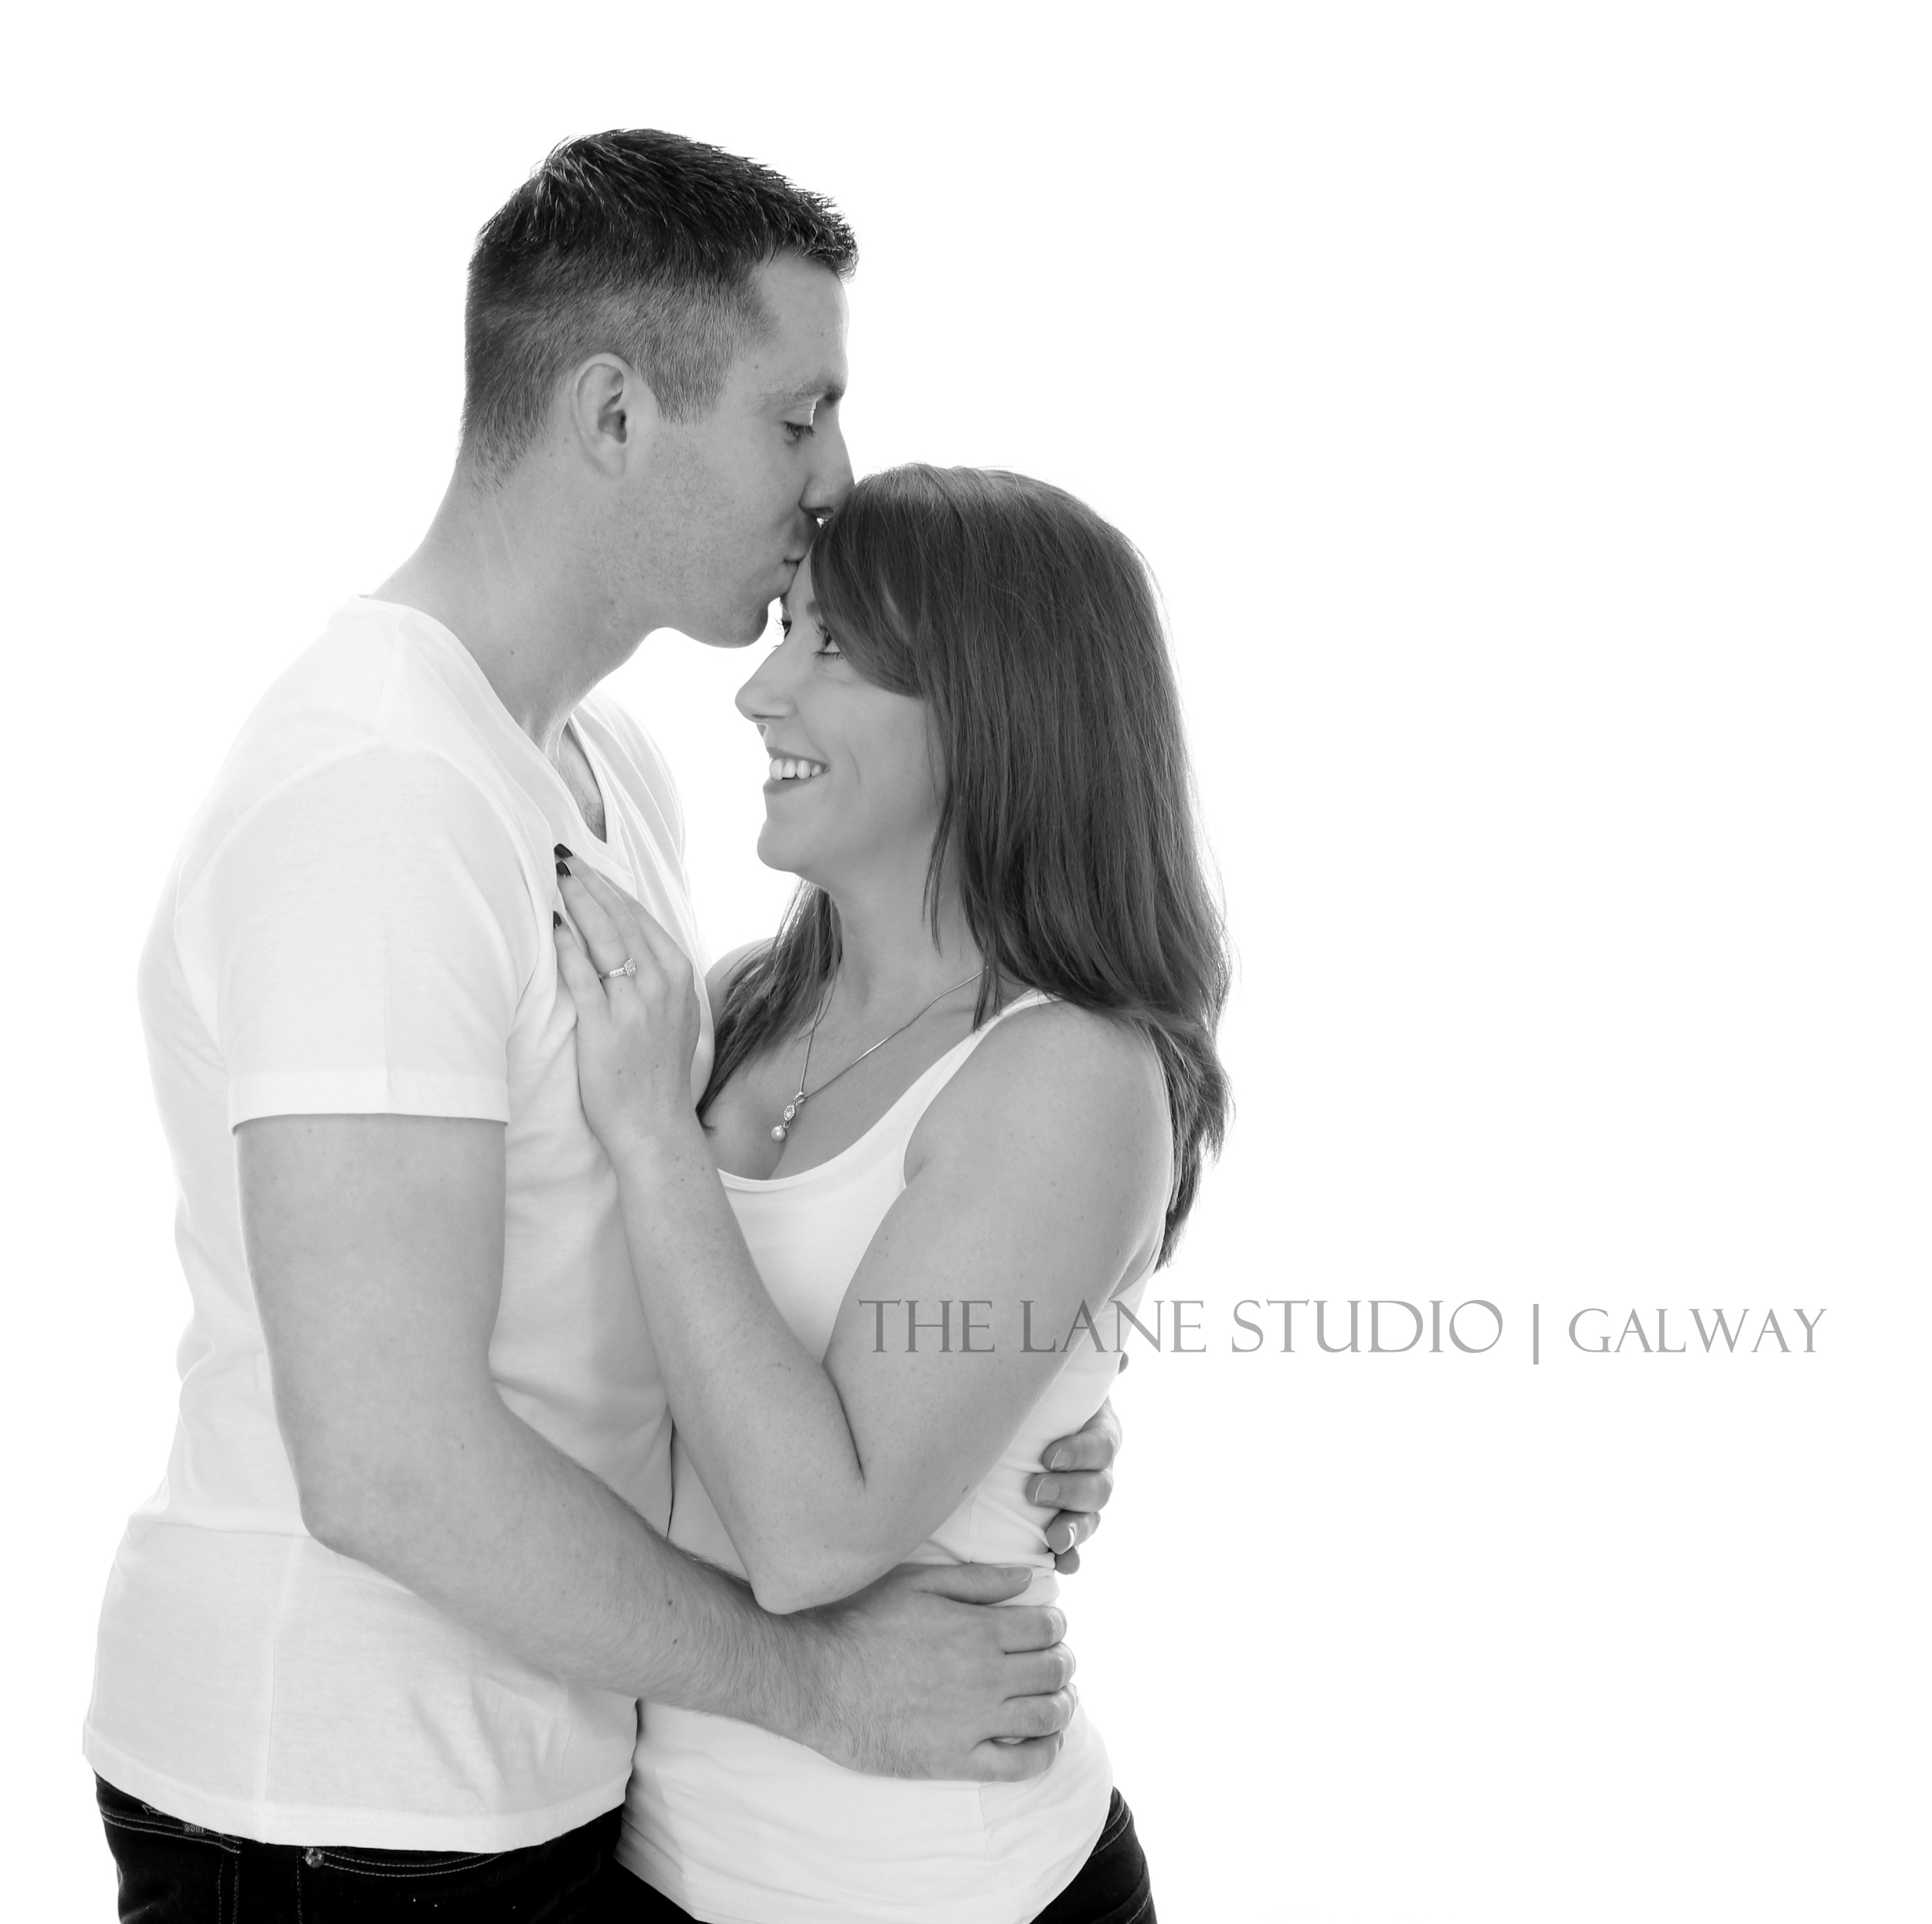 couple photo galway studio